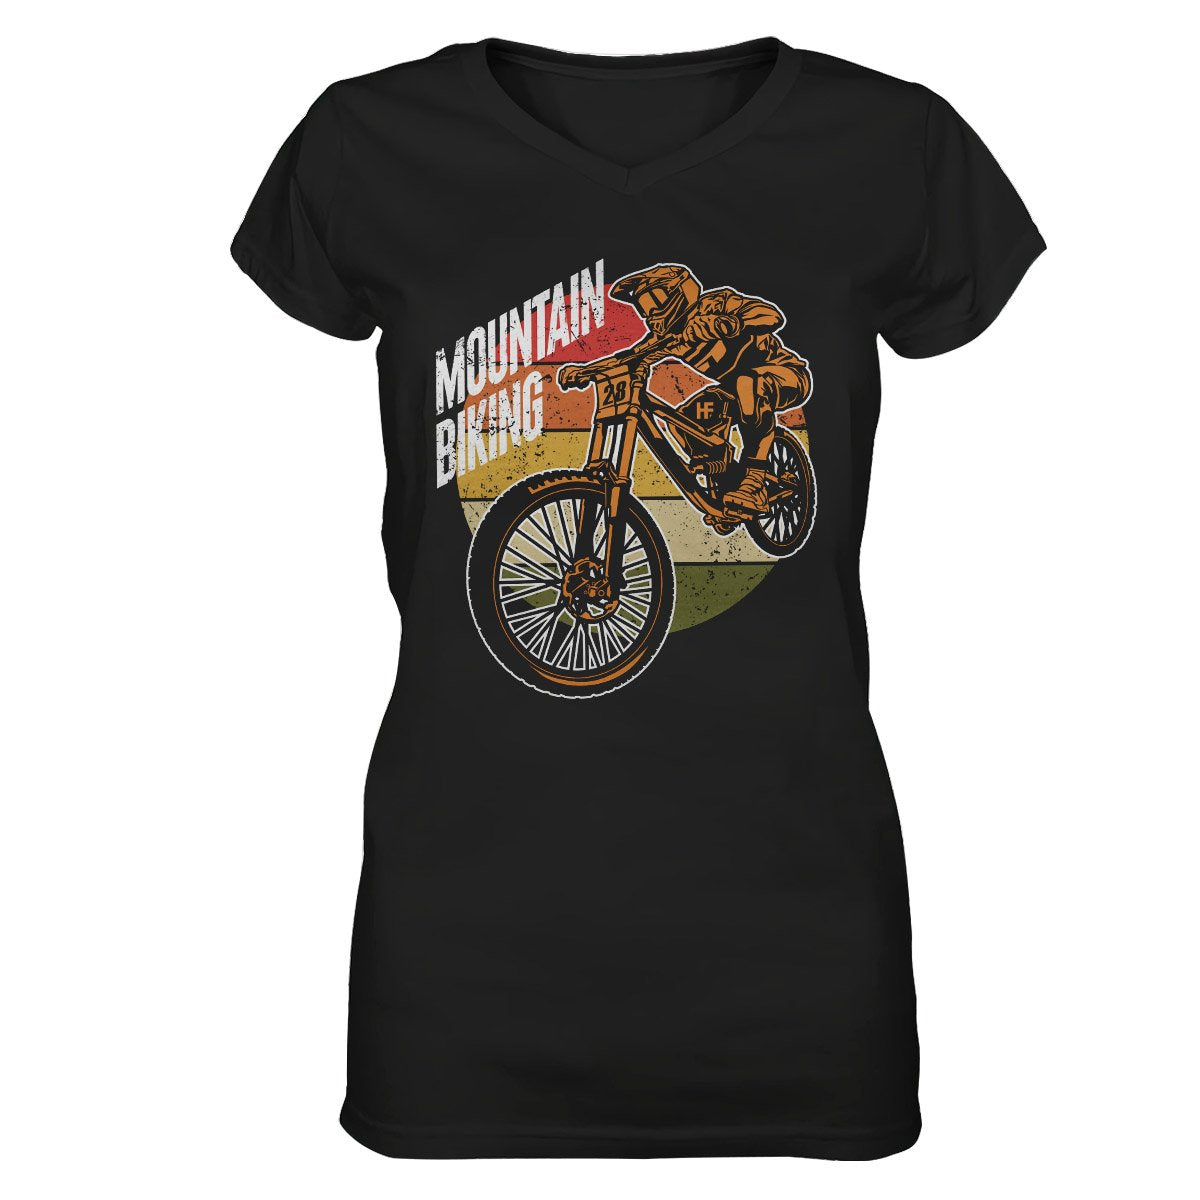 Vintage Mountain Biking EZ22 1410 Women V-neck T-shirt